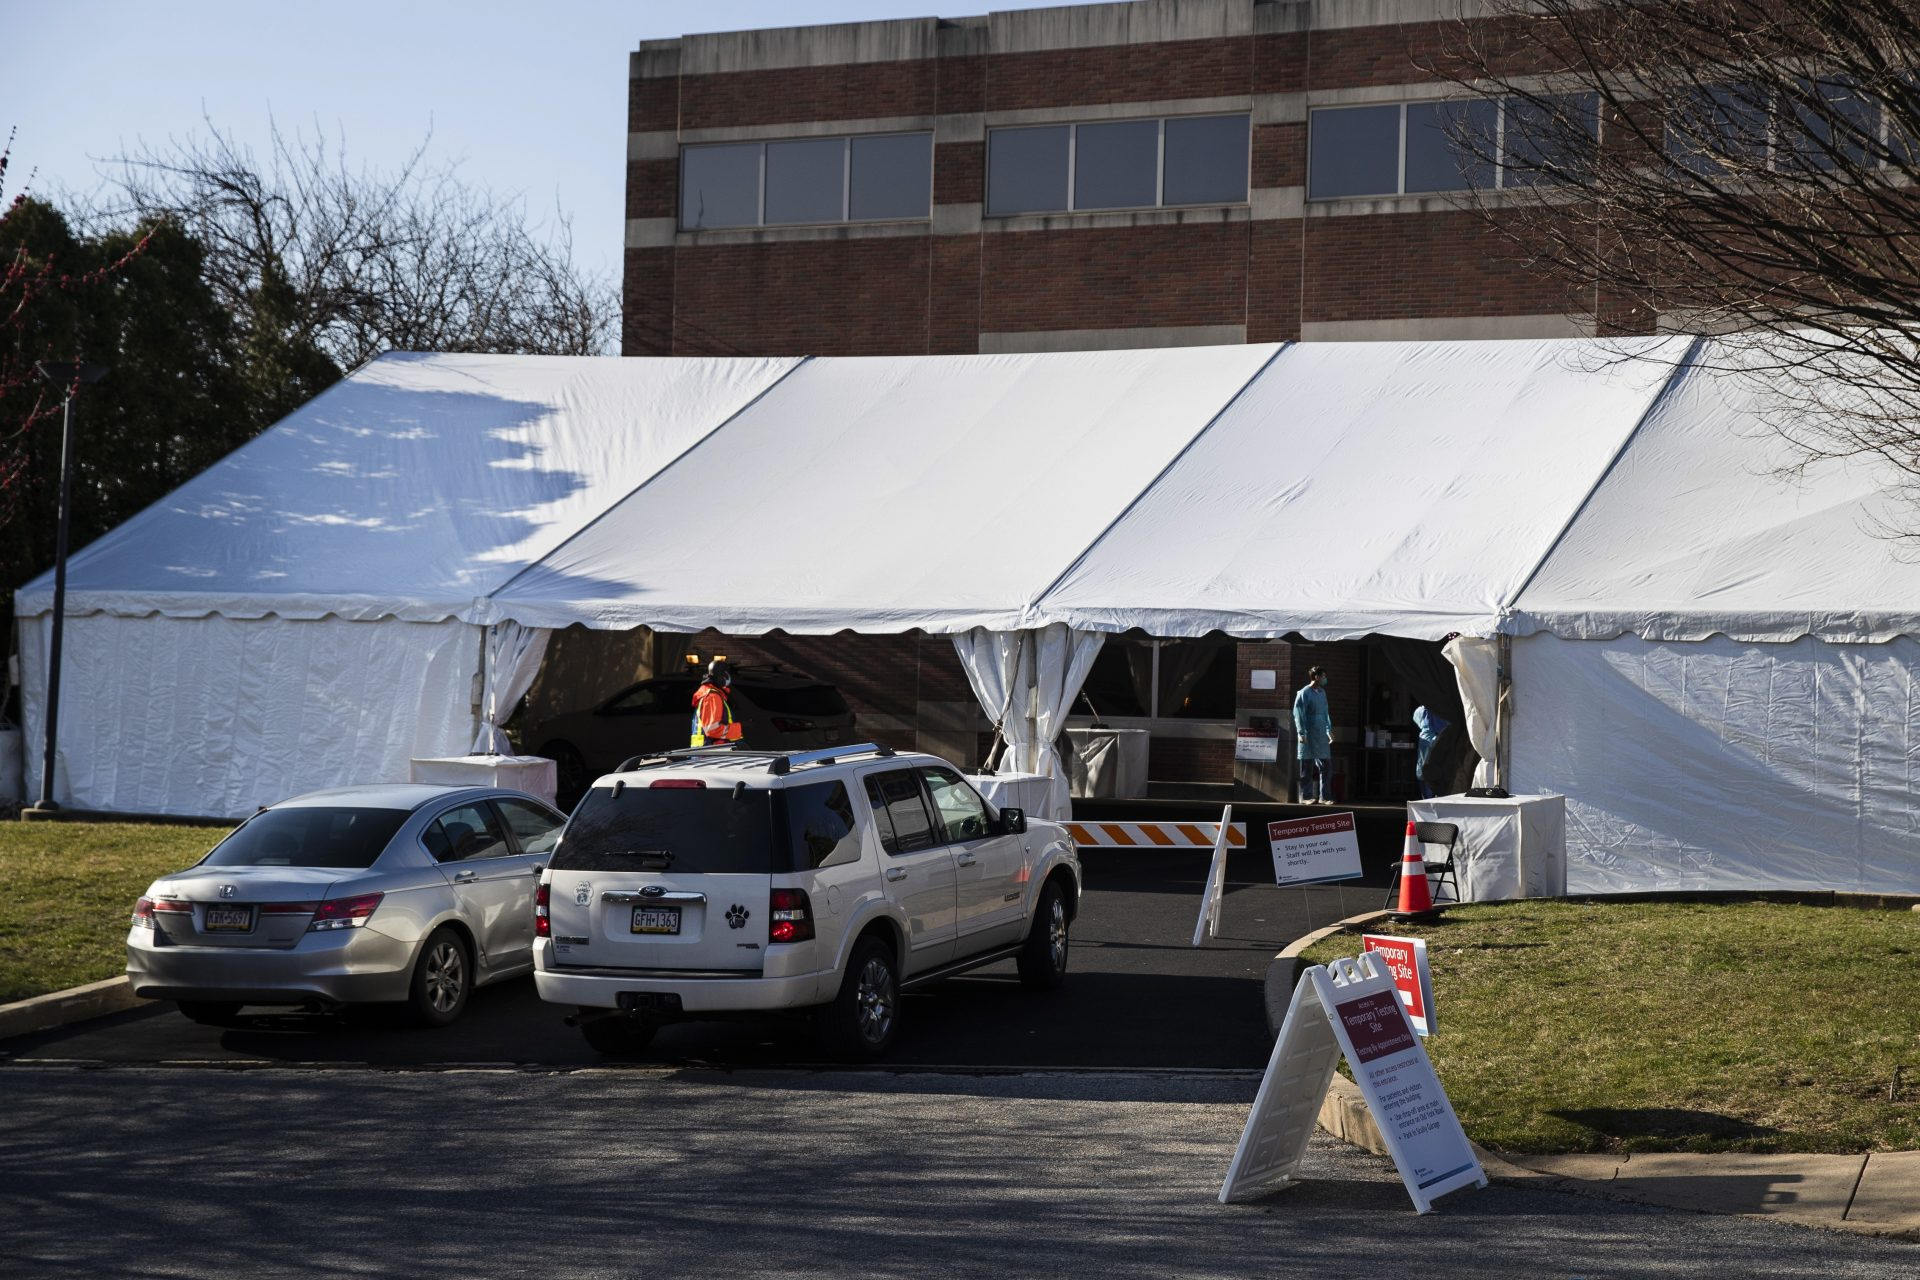 People in cars wait to enter a COVID-19 temporary testing site at Abington Hospital in Abington, Pa., Wednesday, March 18, 2020. For most people, the new coronavirus causes only mild or moderate symptoms. For some it can cause more severe illness.